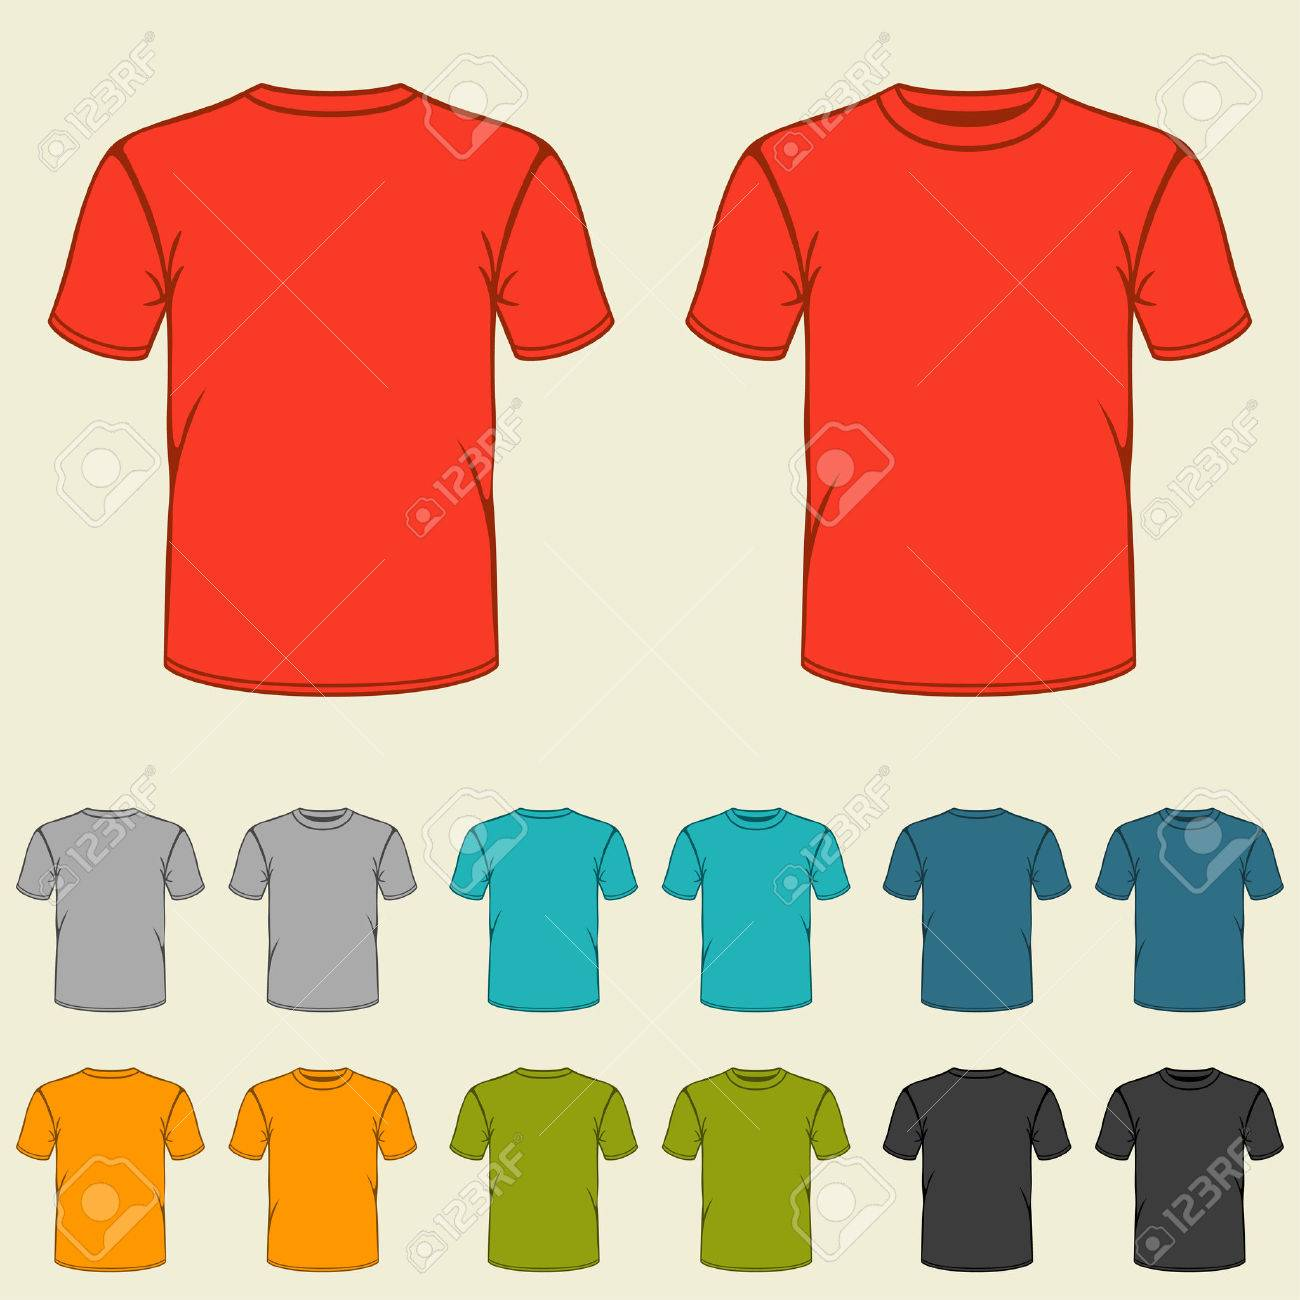 Set Of Templates Colored T-shirts For Men. Royalty Free Cliparts ...